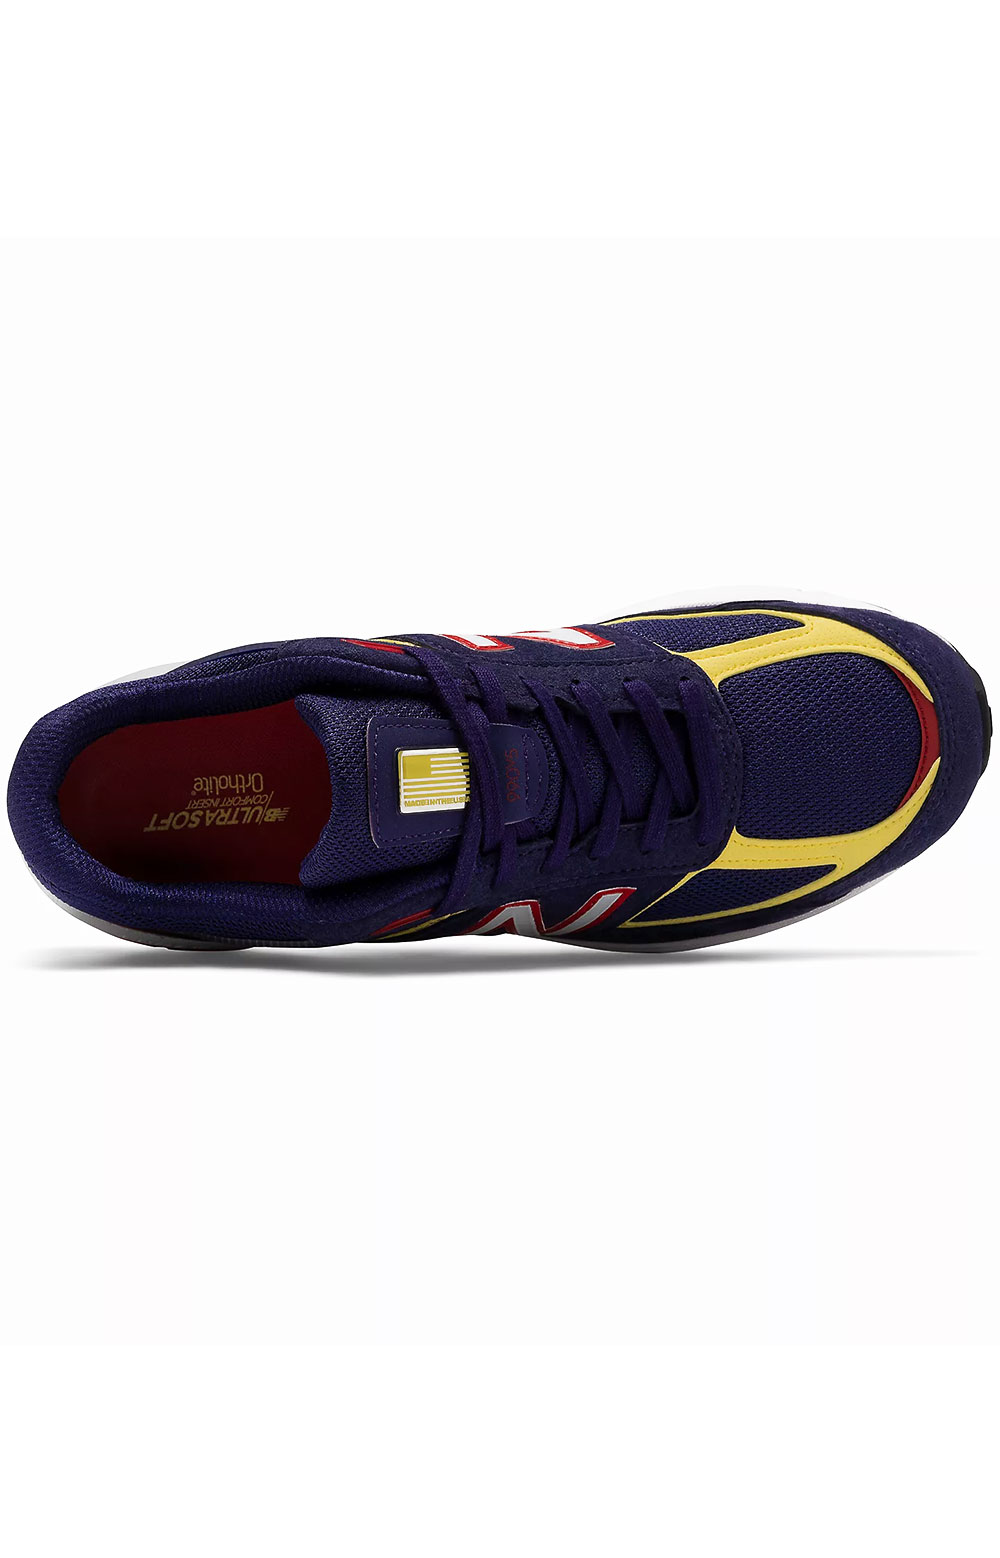 (M990GA5) Made IN US 990v5 Shoes - Virtual Violet/First Light  3